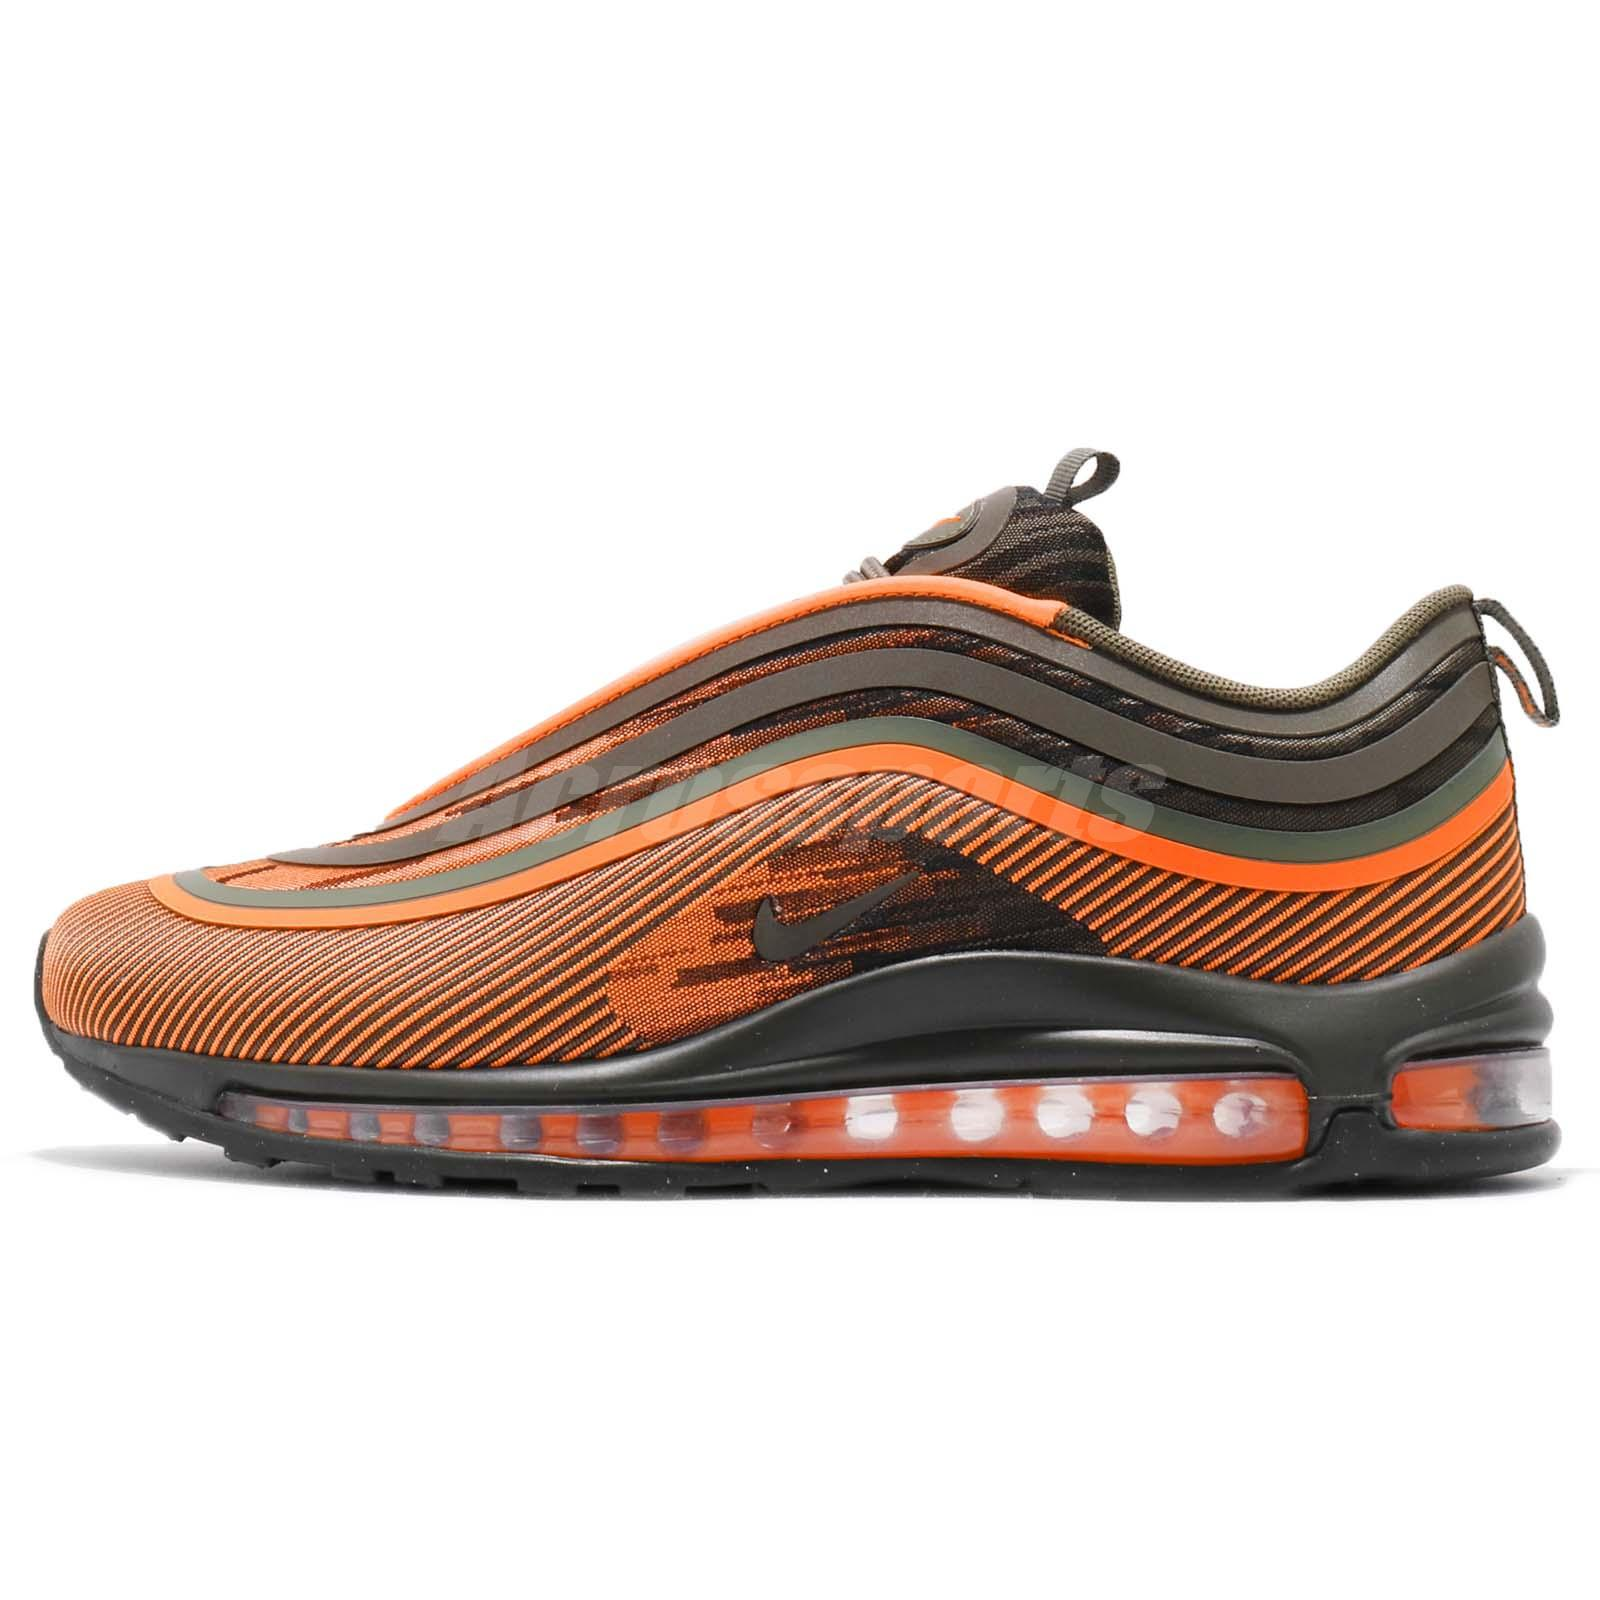 1bd61f46ae Nike Air Max 97 UL 17 Total Orange Olive Green Mens Running Shoes 918356-801